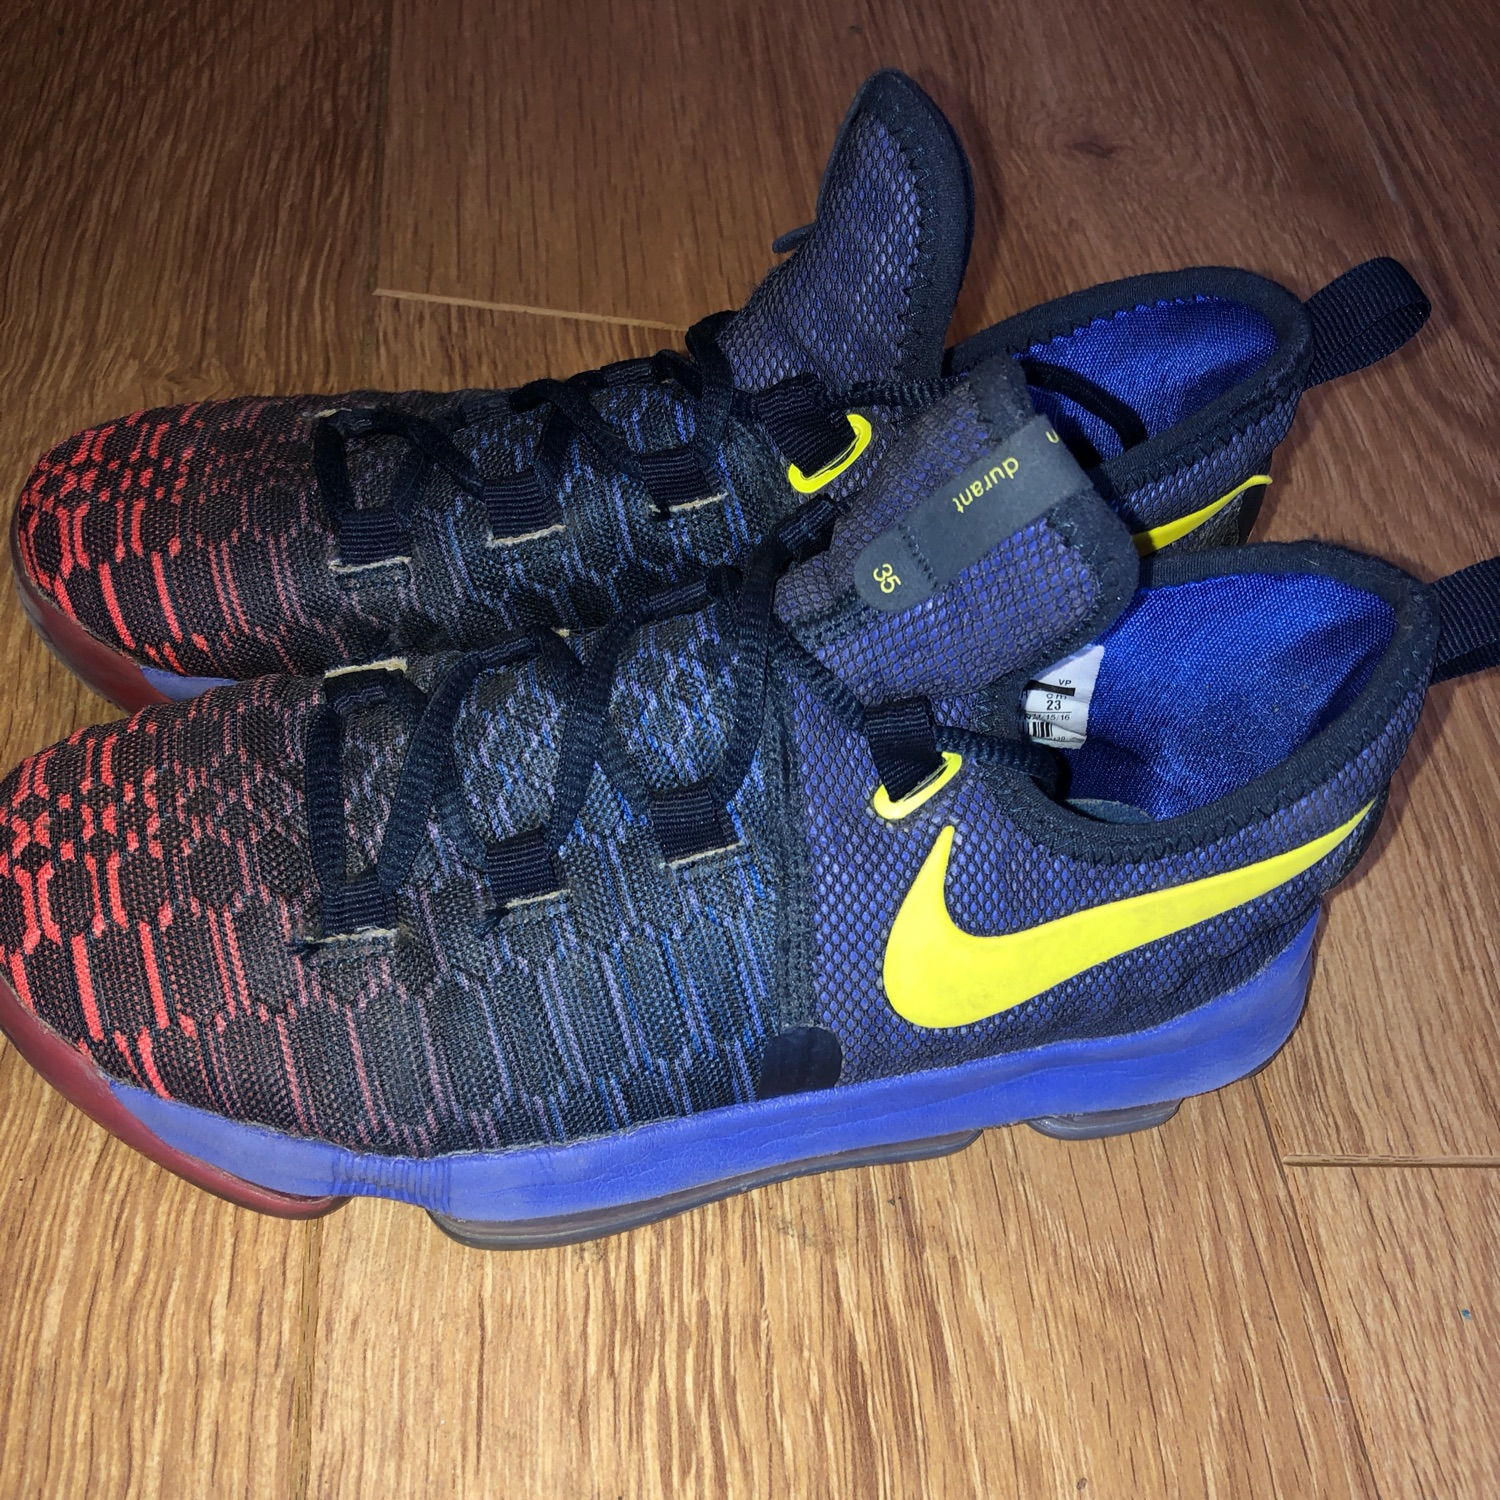 kevin durant basketball shoes buy